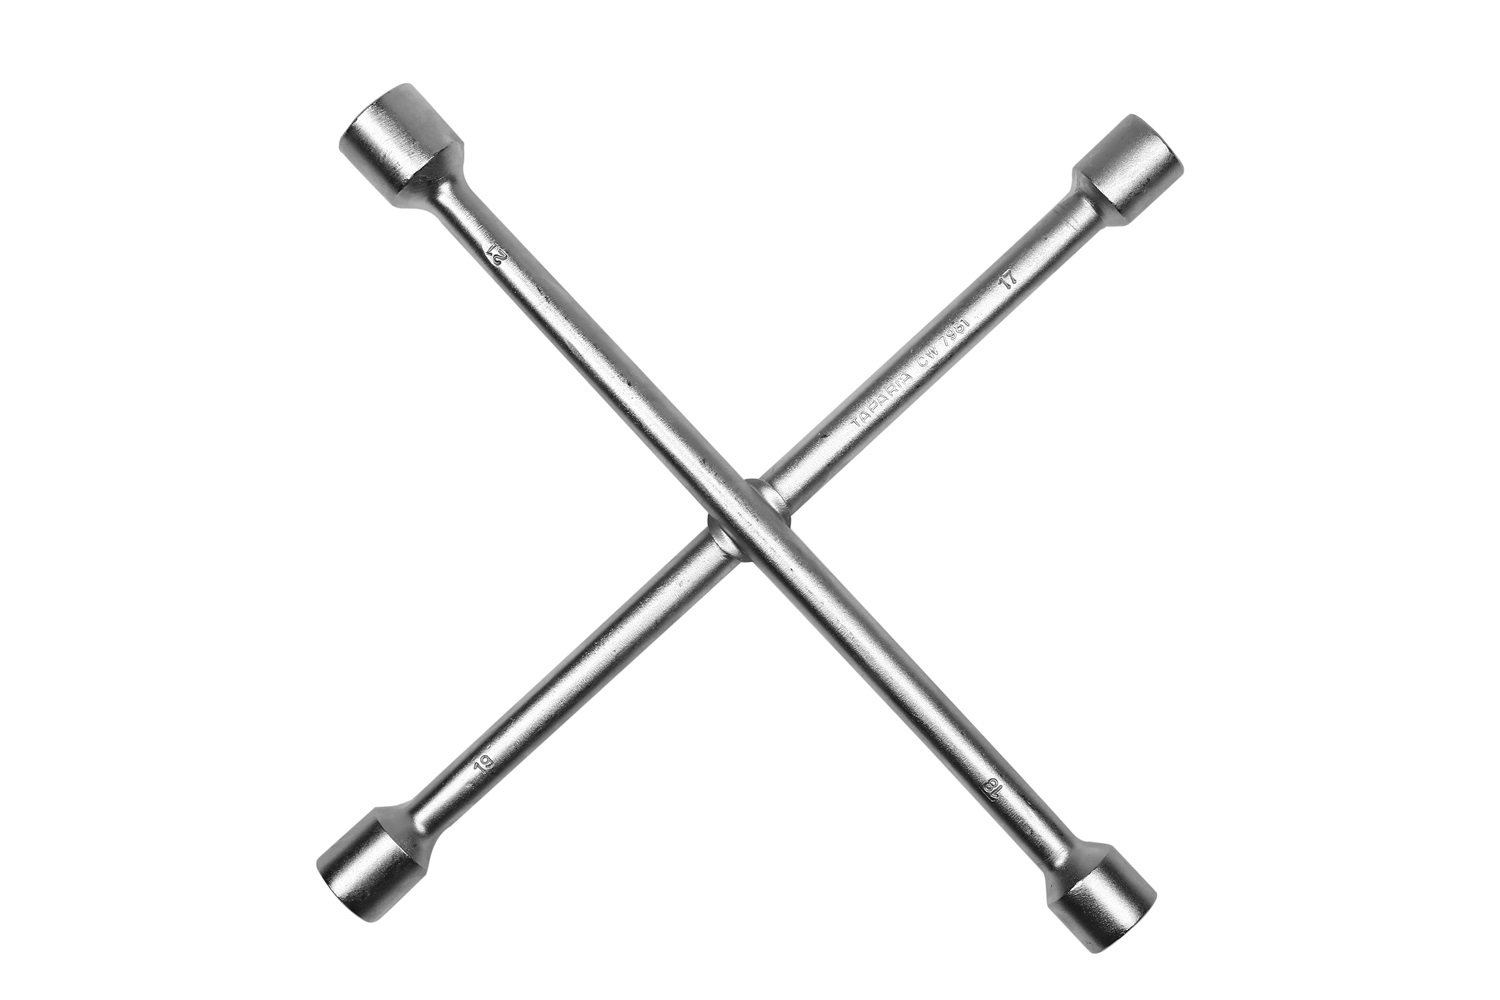 Taparia CW7918 Steel (17 x 19 mm, 18 x 21 mm) Cross Rim Wrench (Silver) product image